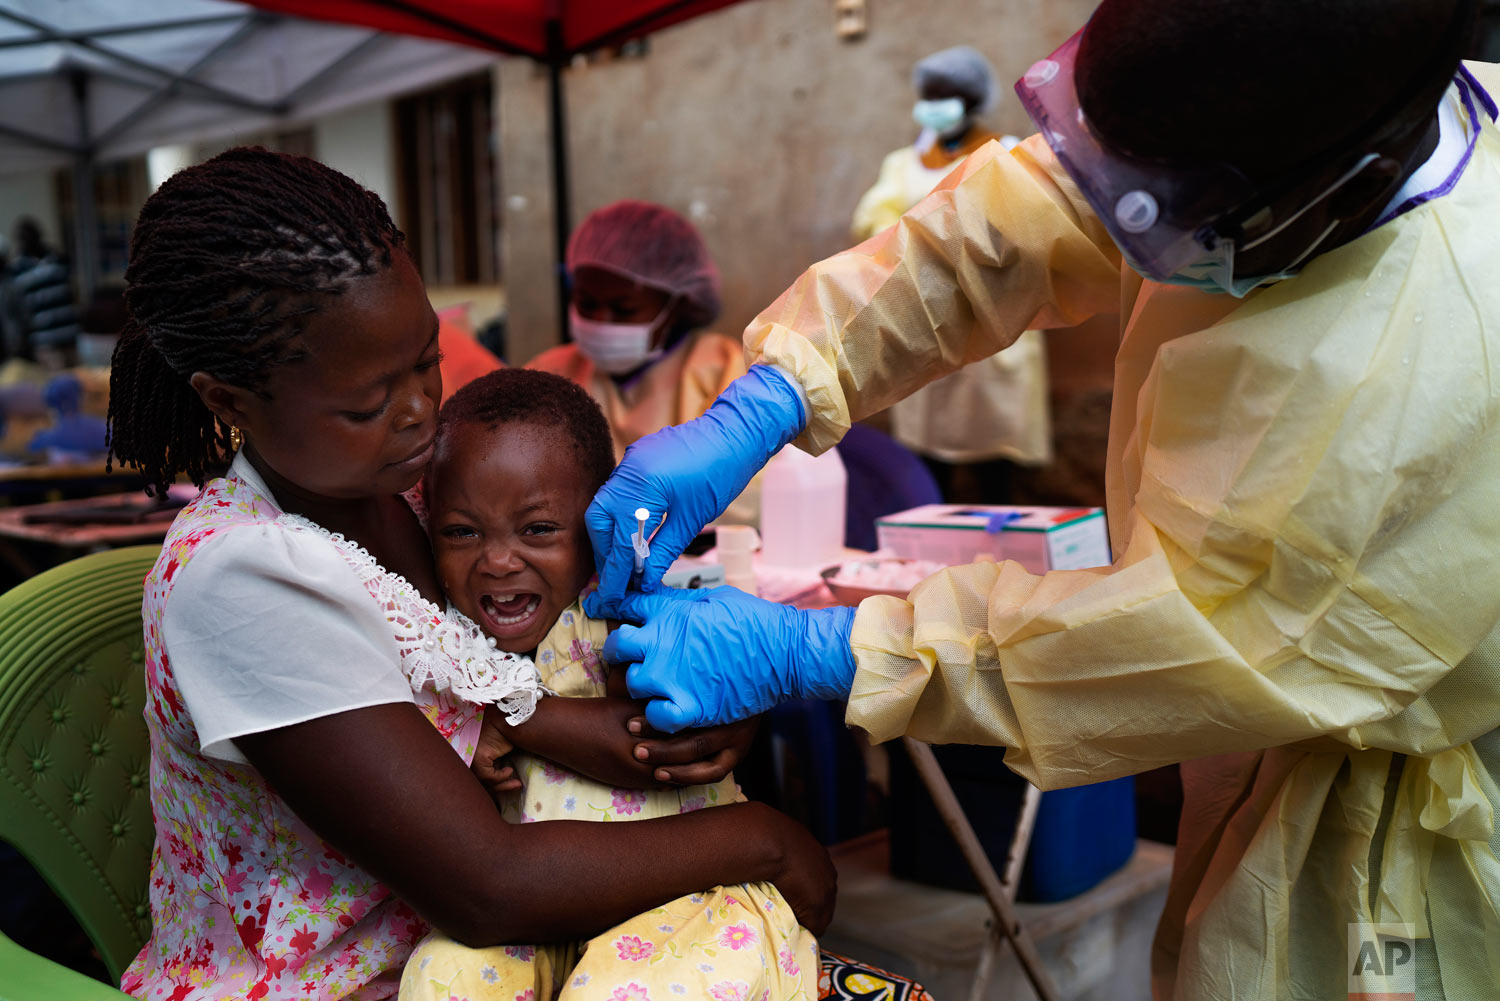 A child is vaccinated against Ebola in Beni, Congo on July 13 2019. (AP Photo/Jerome Delay)